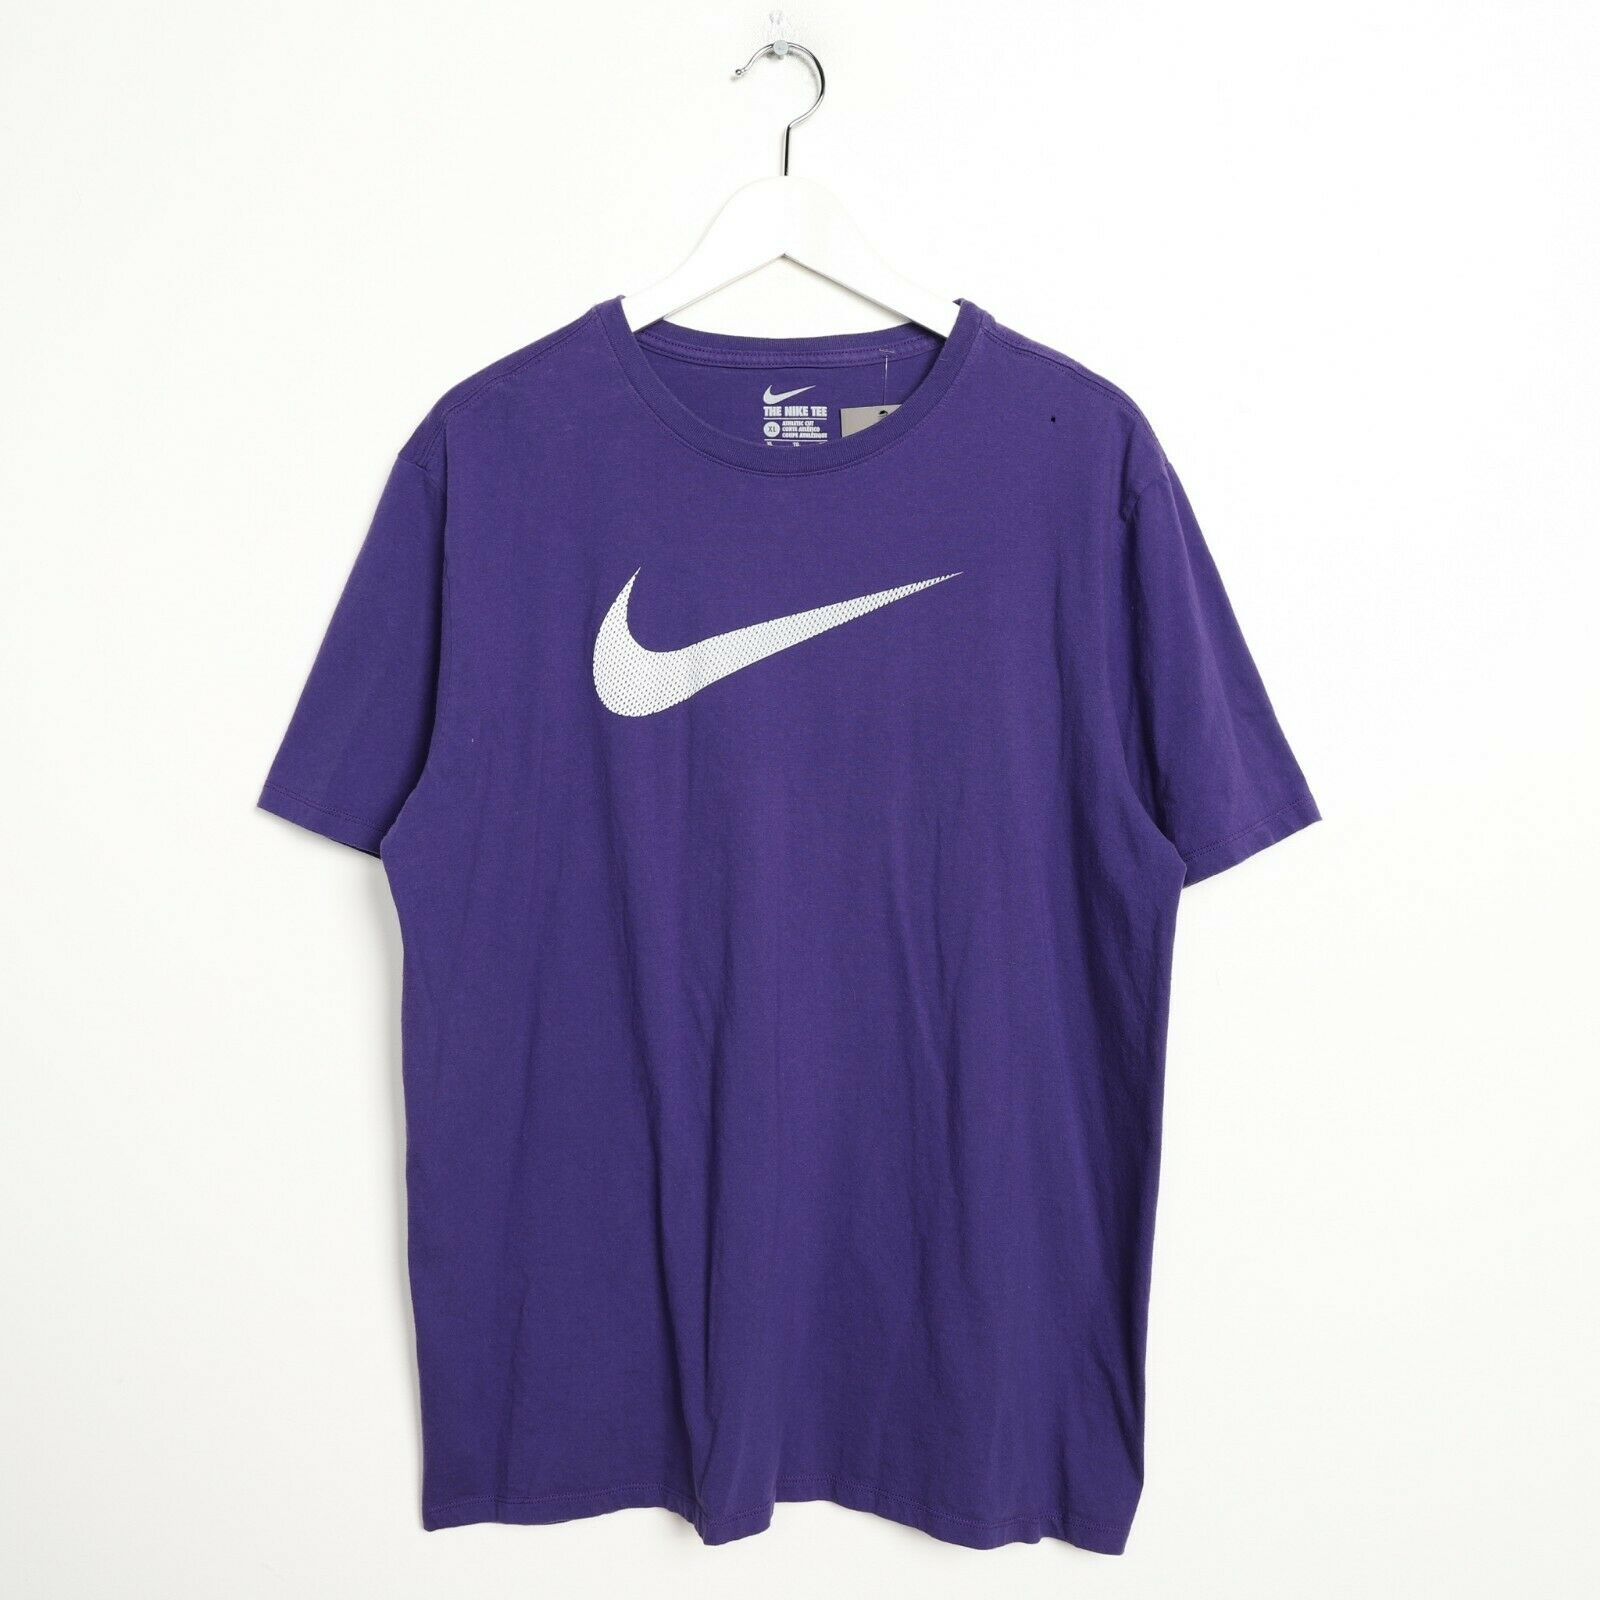 Vintage NIKE Big Swoosh Logo T Shirt Tee Purple XL